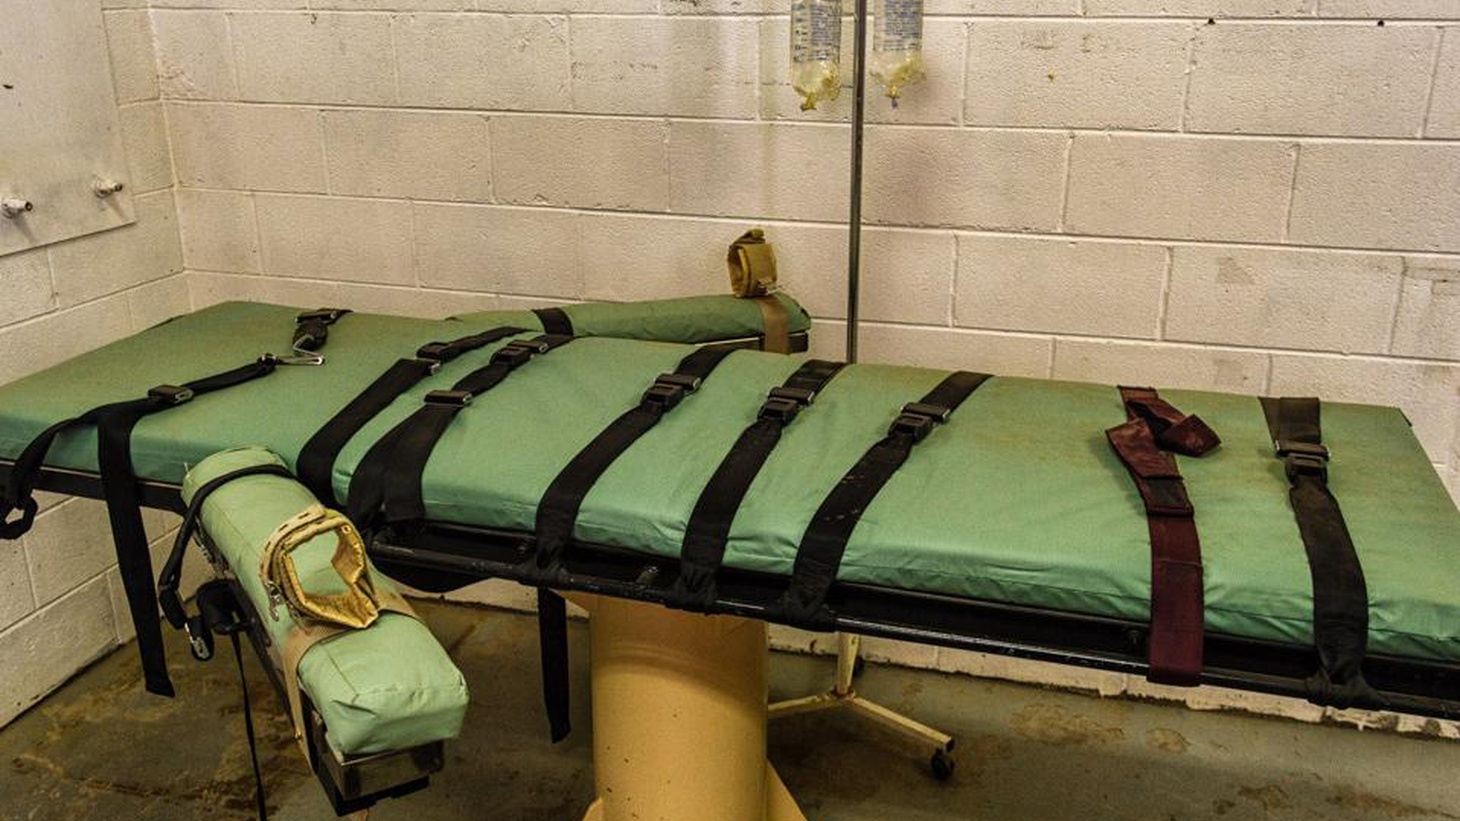 Last week in Oklahoma, Clayton Lockett became the latest in a series of death row inmates who have visibly suffered during their executions.